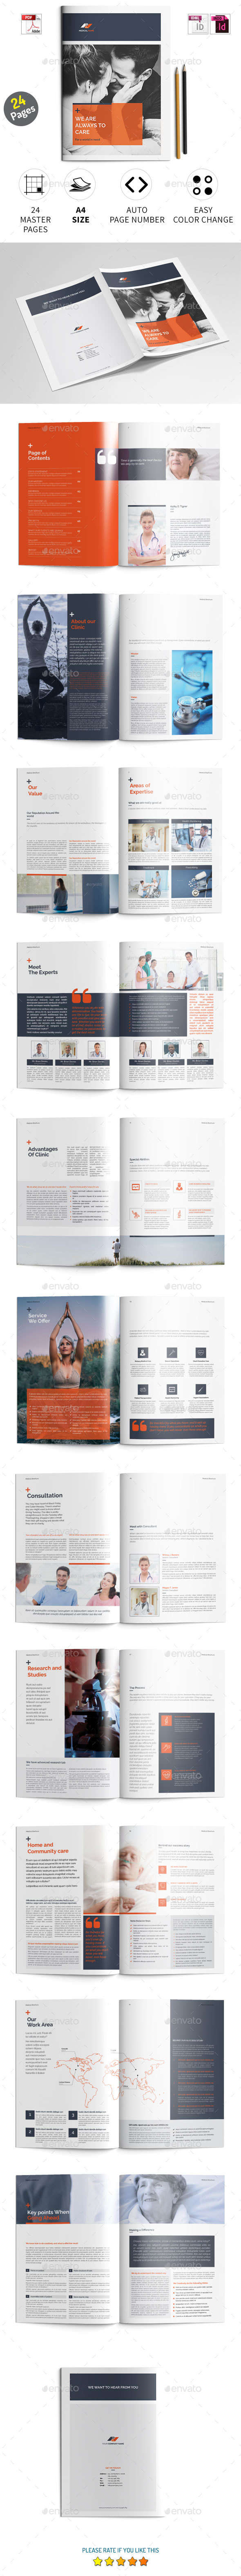 Medical Brochure - Informational Brochures